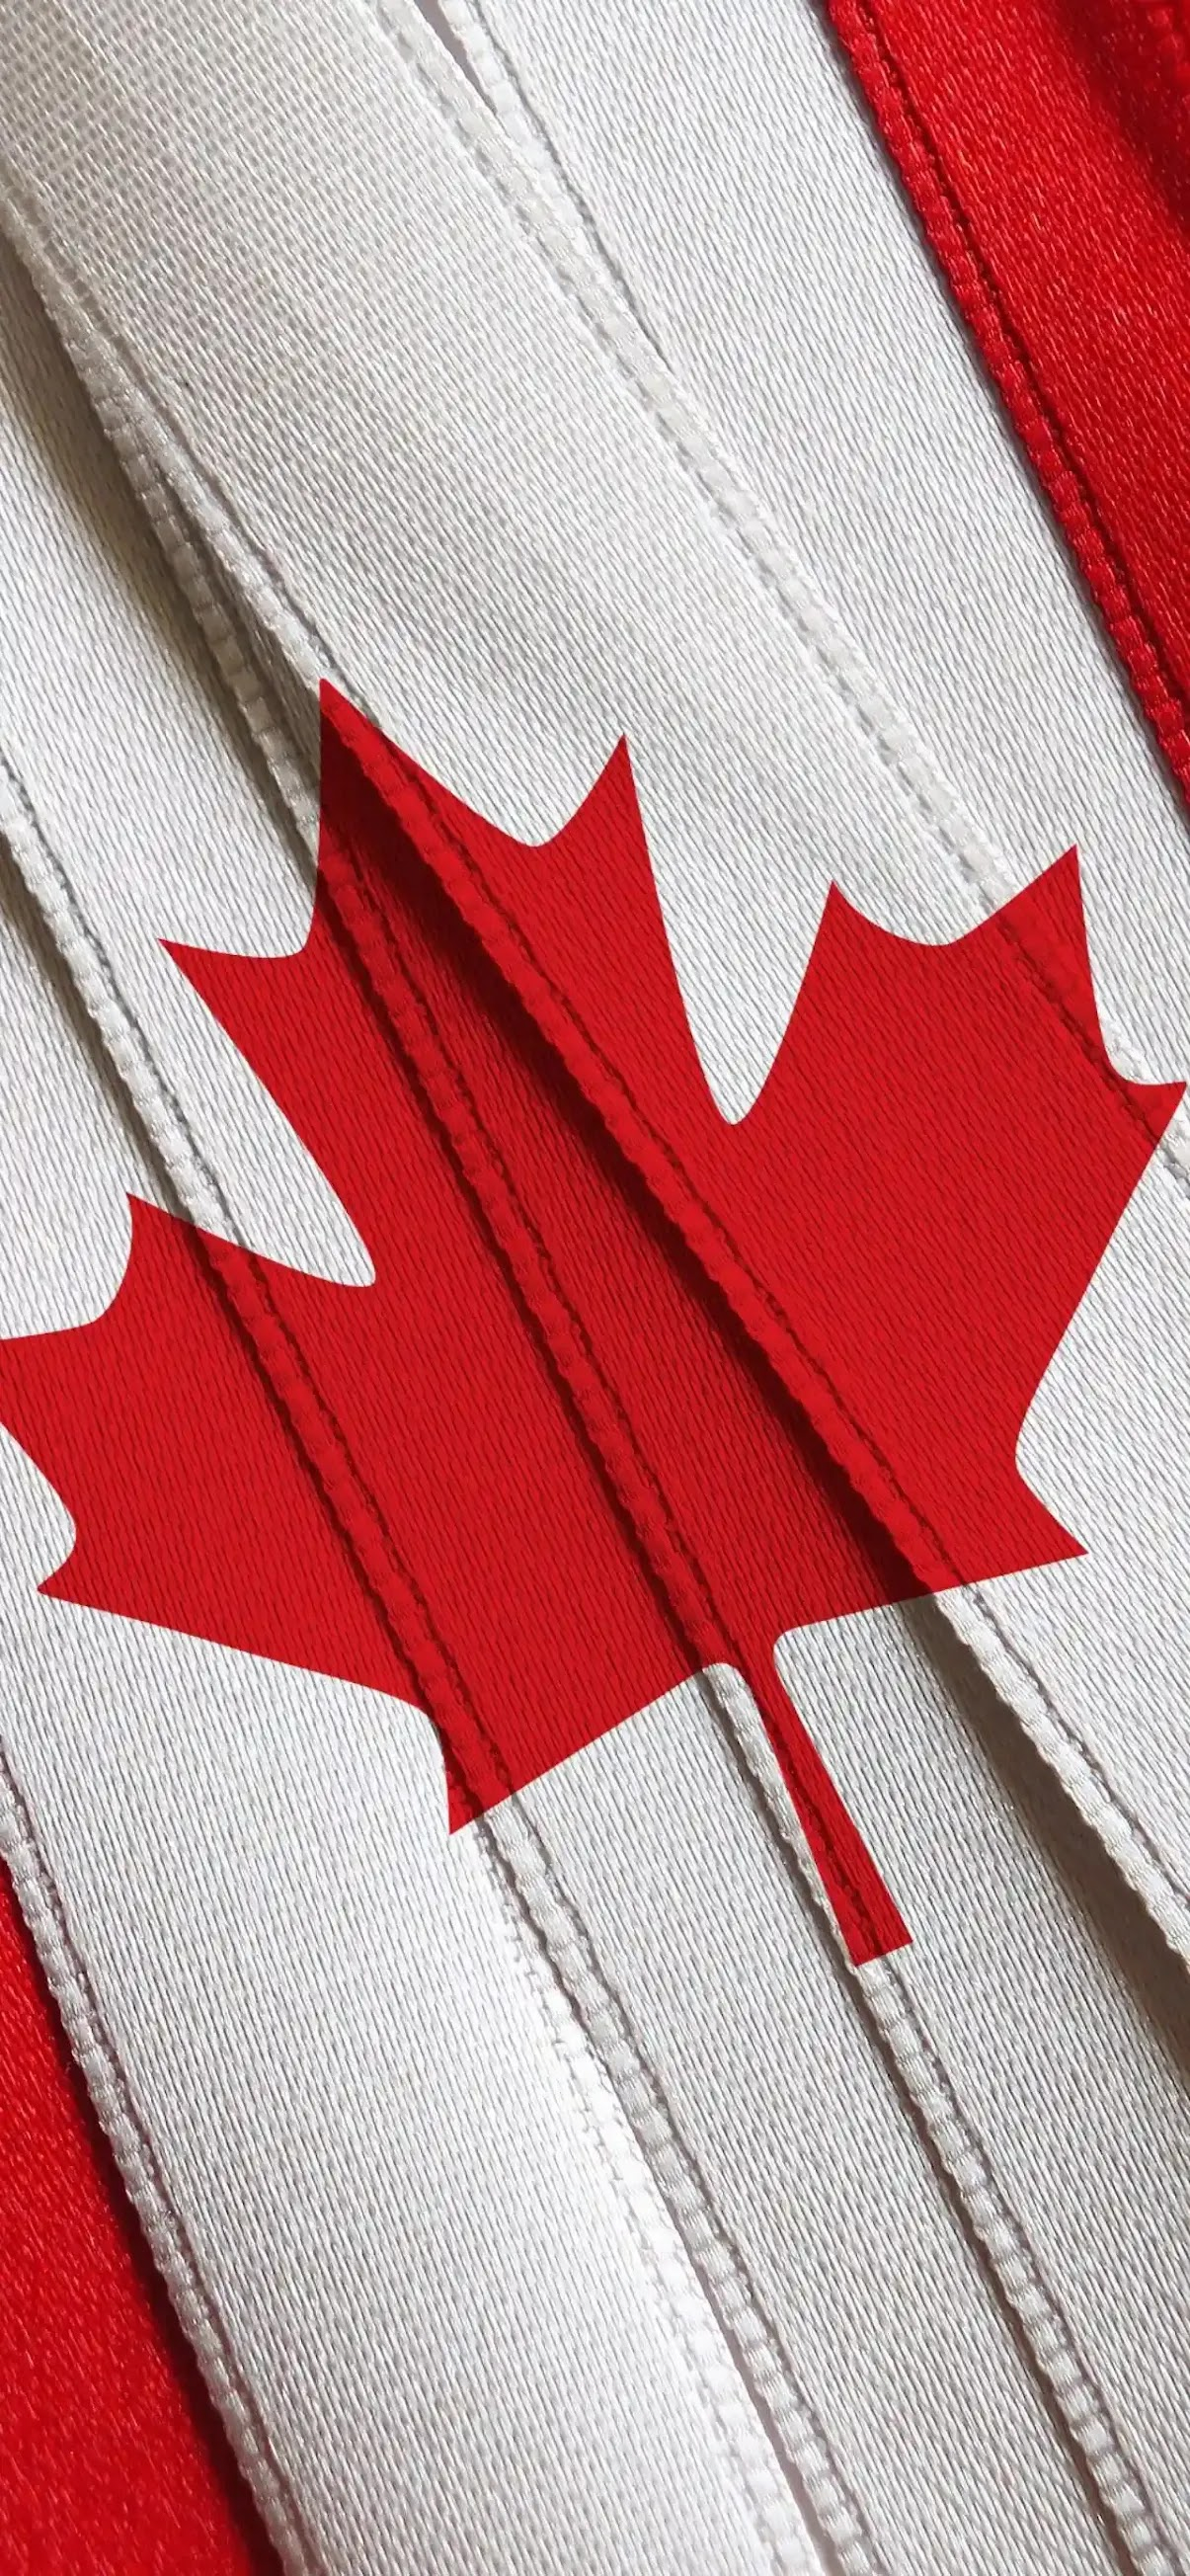 Canada flag wallpaper for iphone